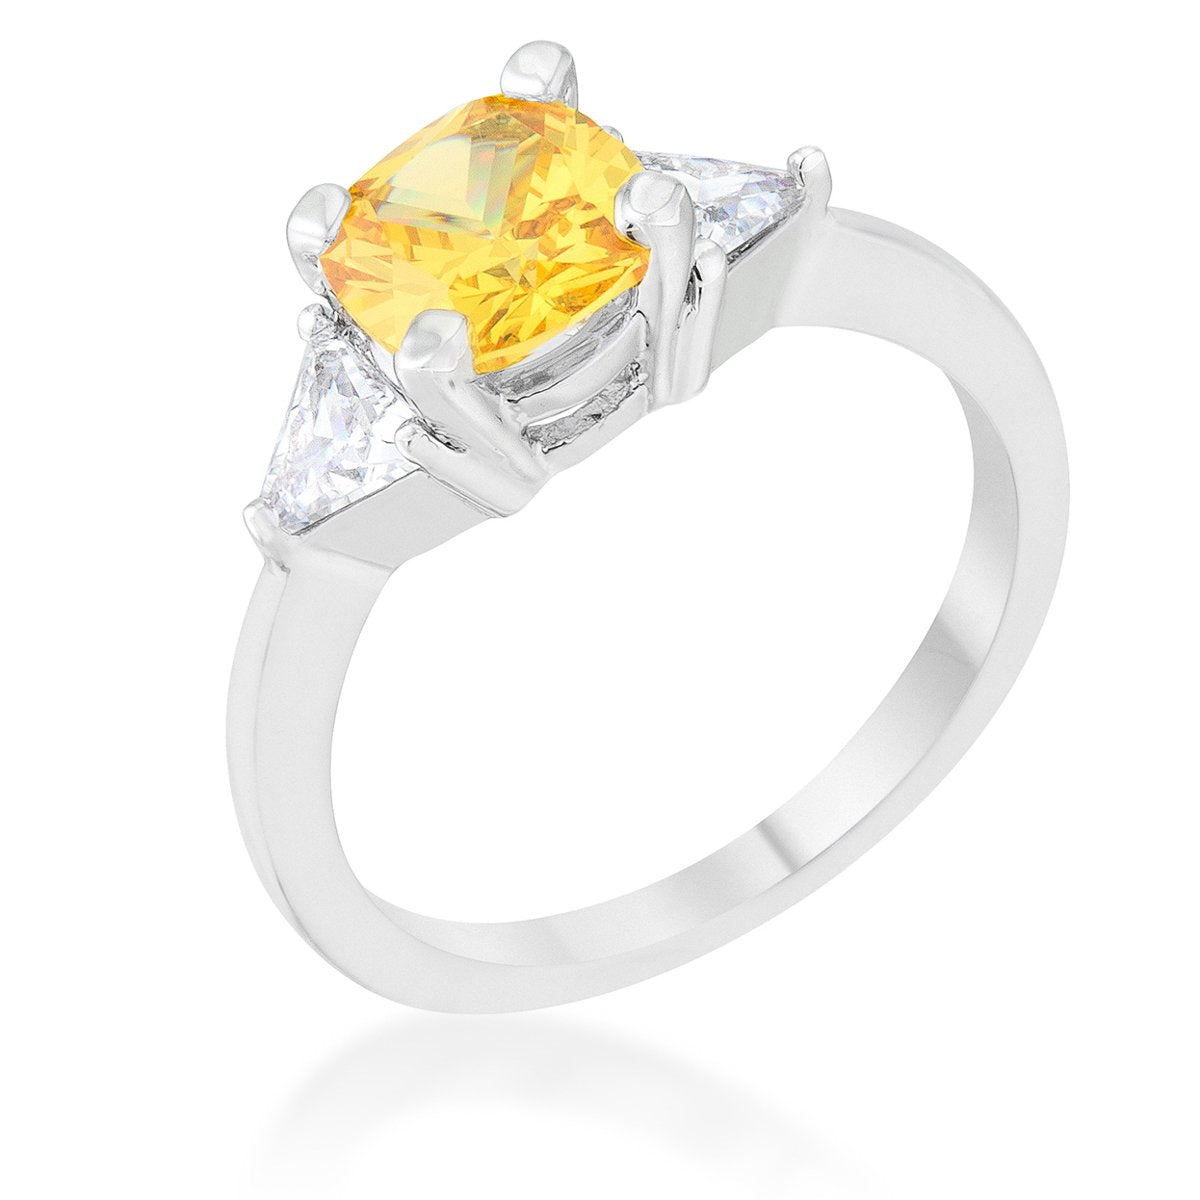 Shonda 1.8ct Canary CZ Rhodium Cushion Classic Statement Ring - R08475R-C61